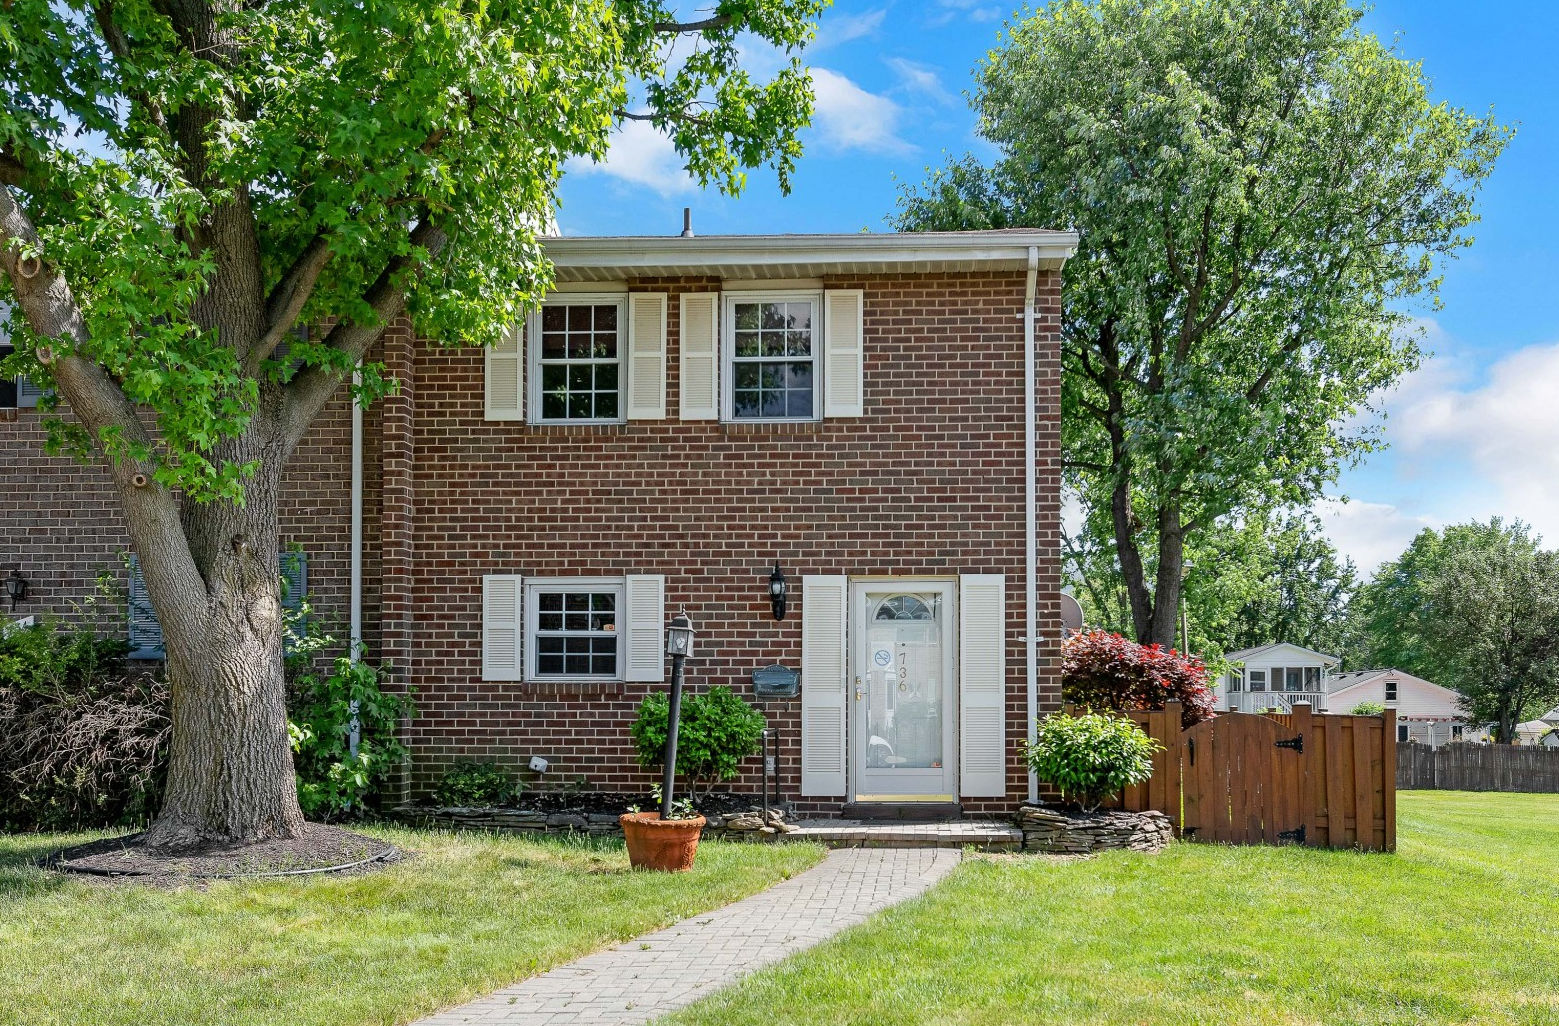 736 Colonial Ave, Sterling- For Sale